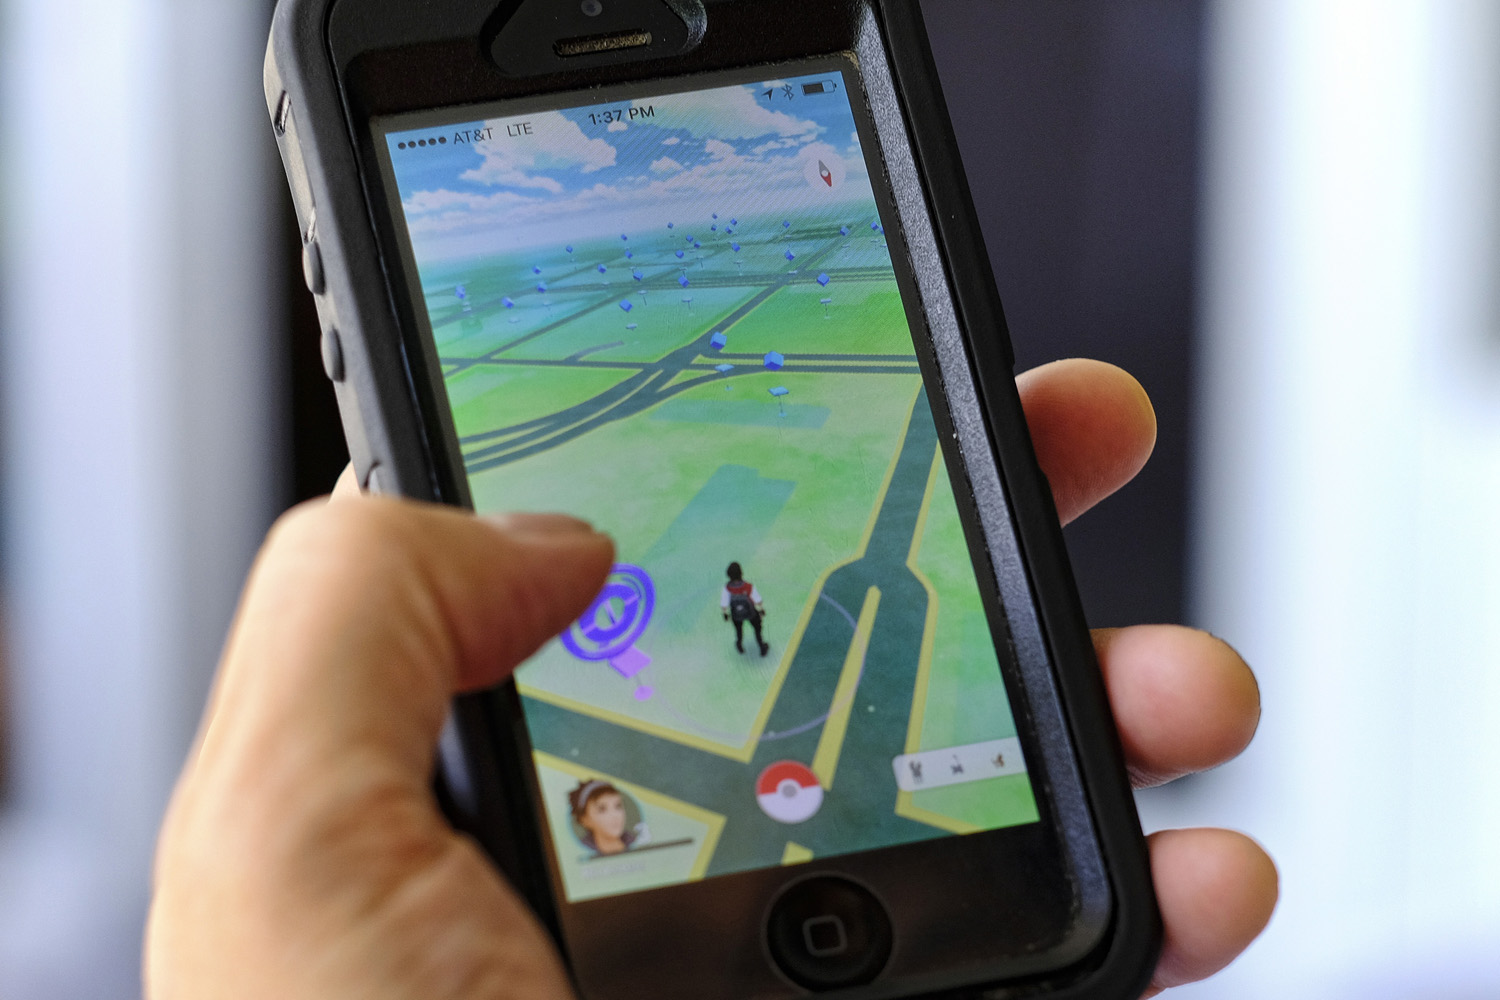 Pokemon Go is displayed on a cell phone in Los Angeles. Just days after being made available in the U.S., the mobile game Pokemon Go has jumped to become the top-grossing app in the App Store. (Richard Vogel/AP)